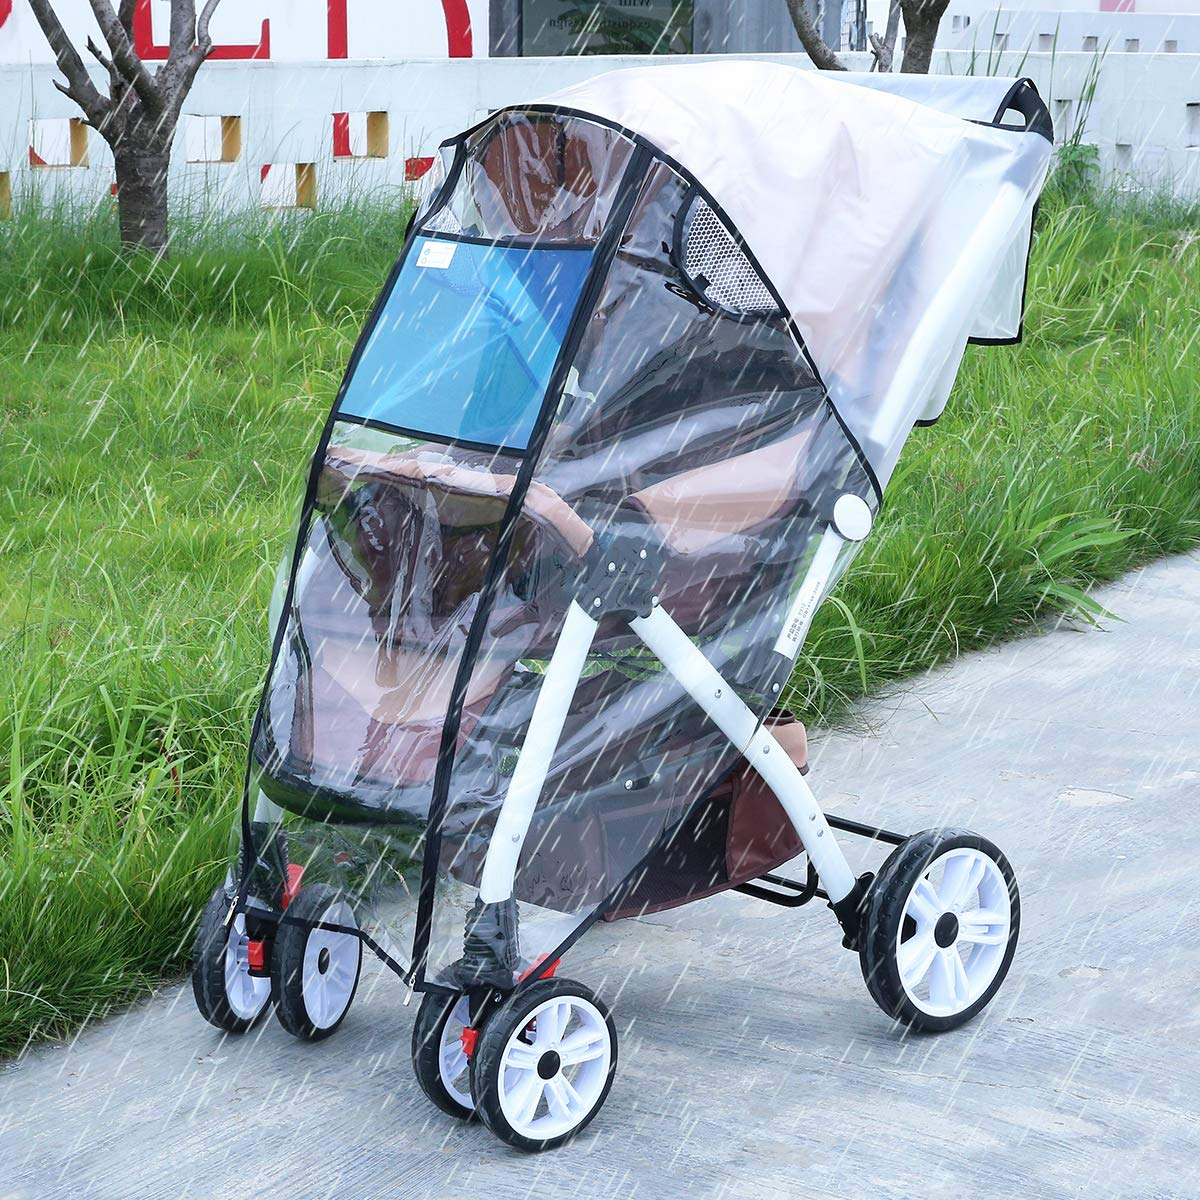 Hrzeem Stroller Rain Cover Stroller Cover Universal Baby Stroller Weather Shield with Storage Pouch EVA Clear Zip Front Opening Waterproof Windproof Protection Easy to Install for Outdoor Use (Black) by Hrzeem (Image #2)